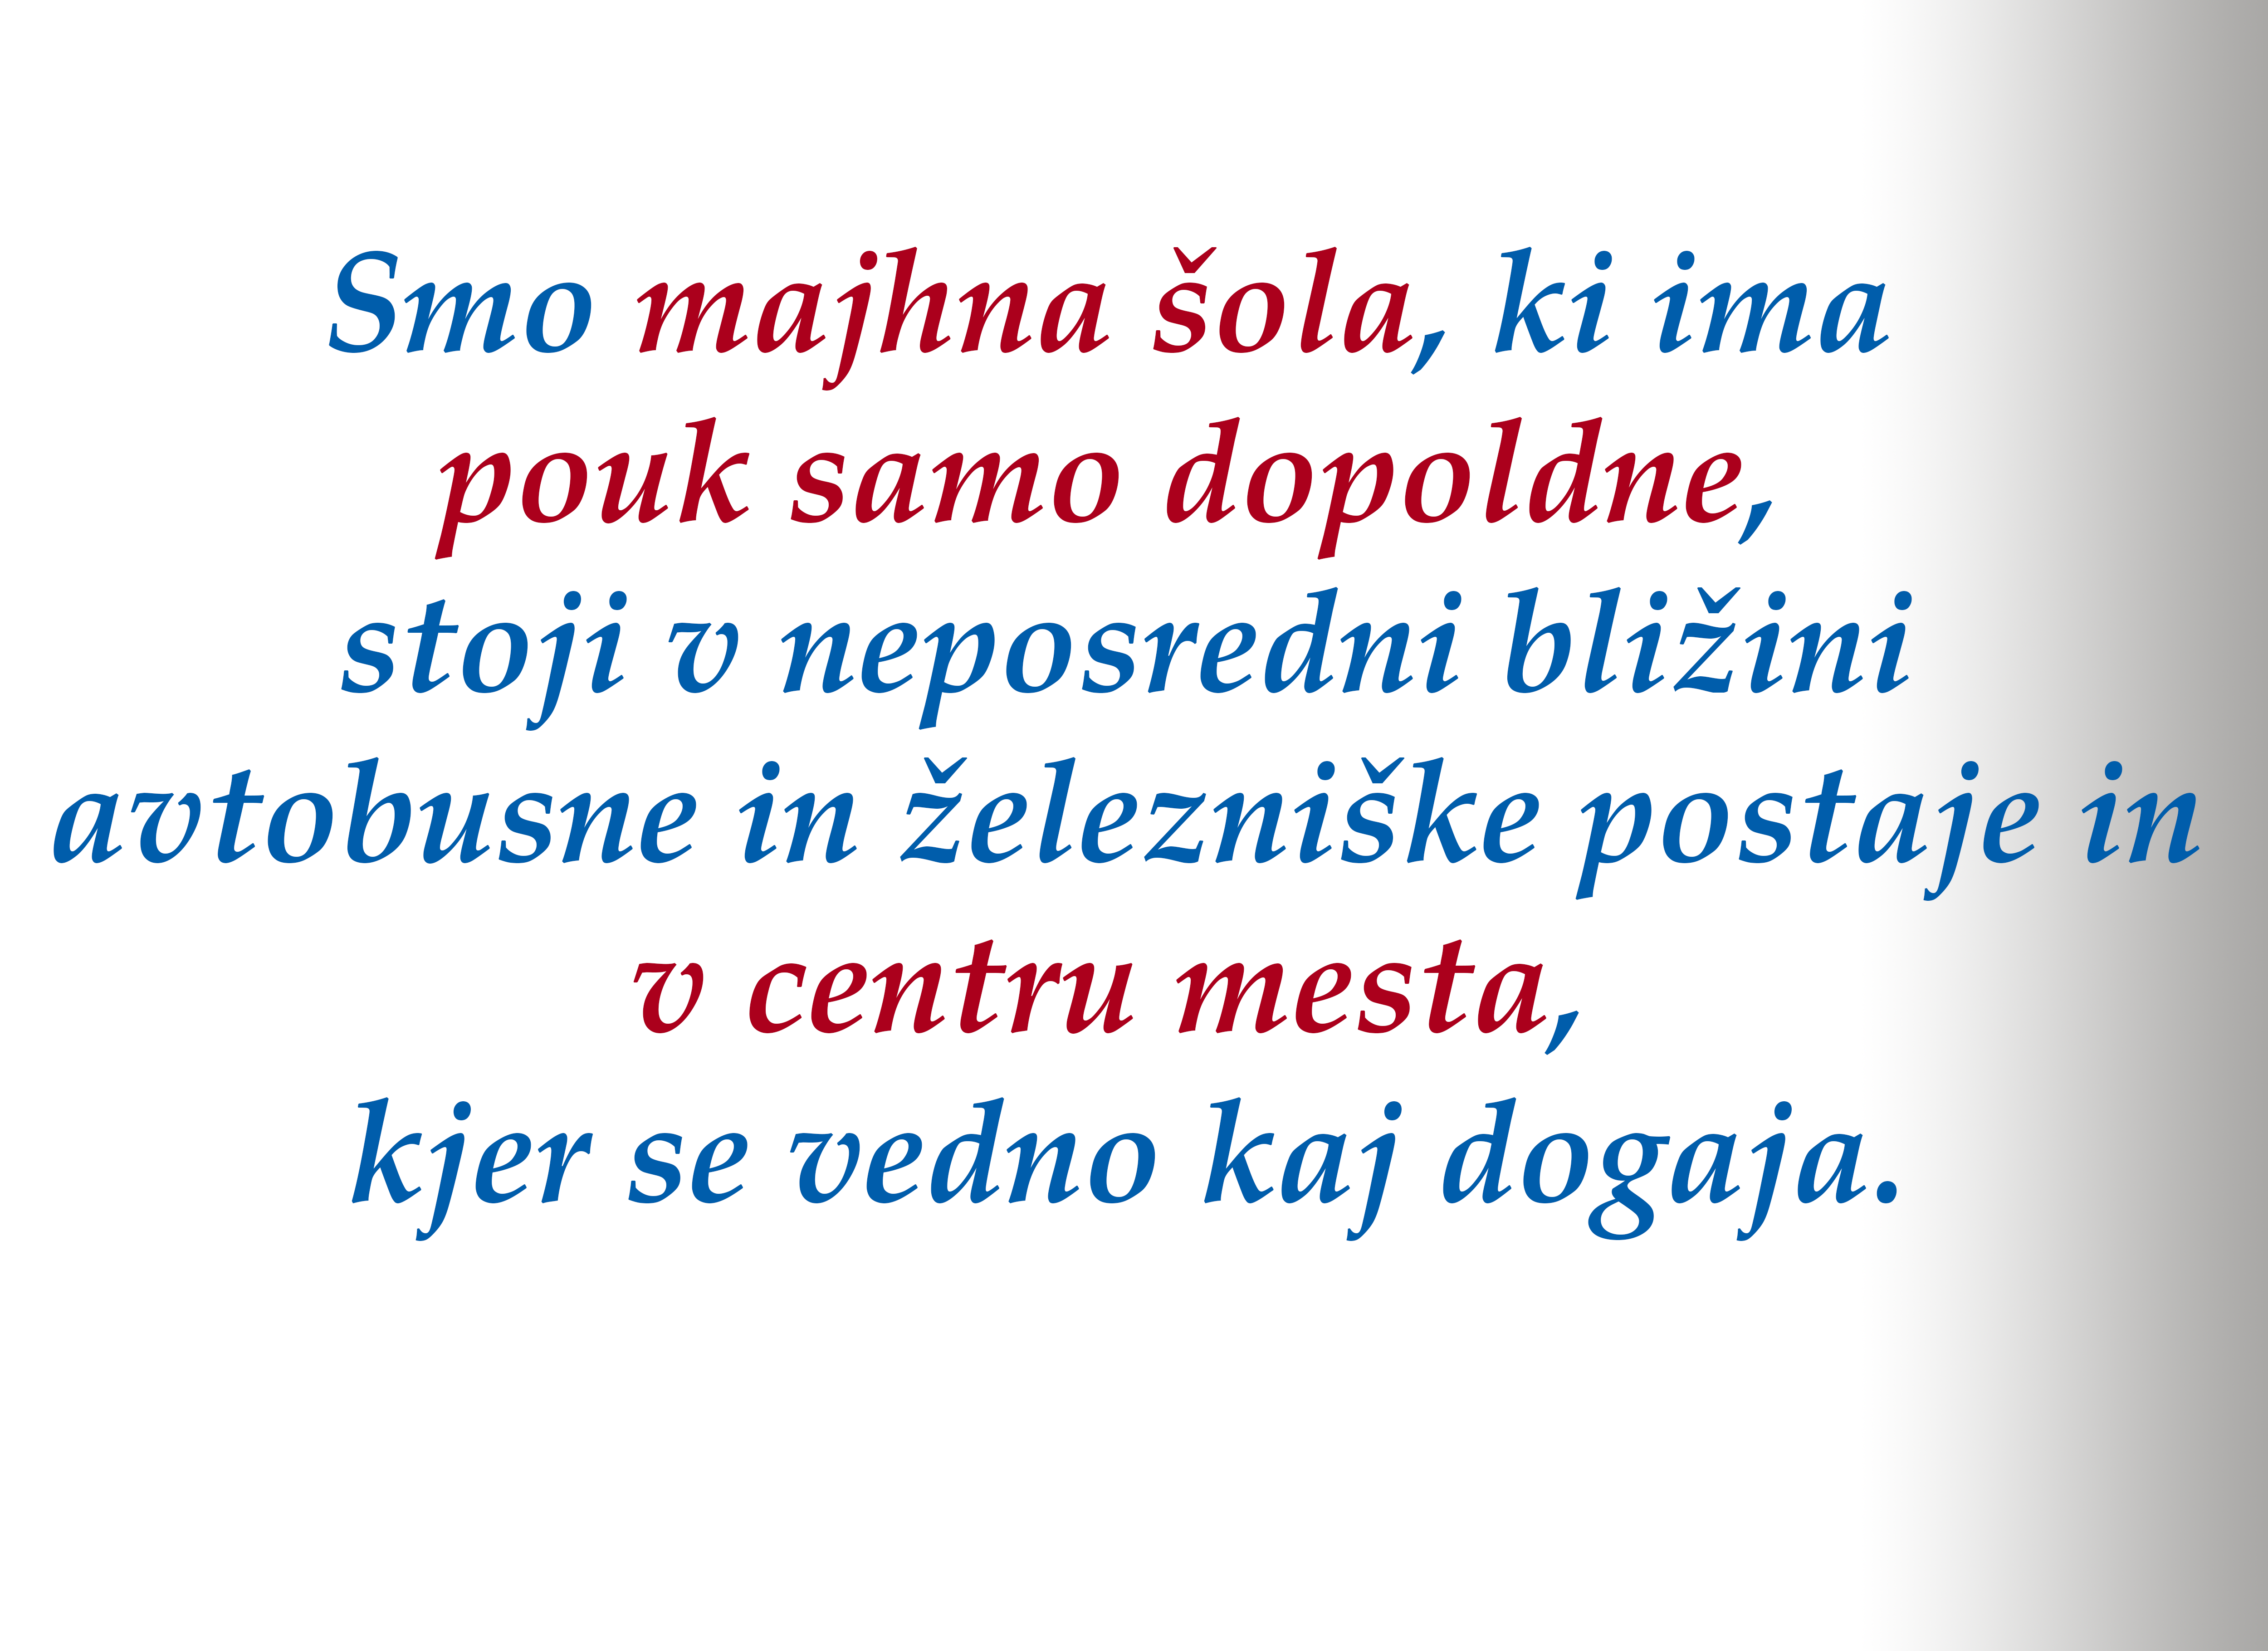 http://www.esnm.si/wp-content/uploads/2020/02/02_tekst.png